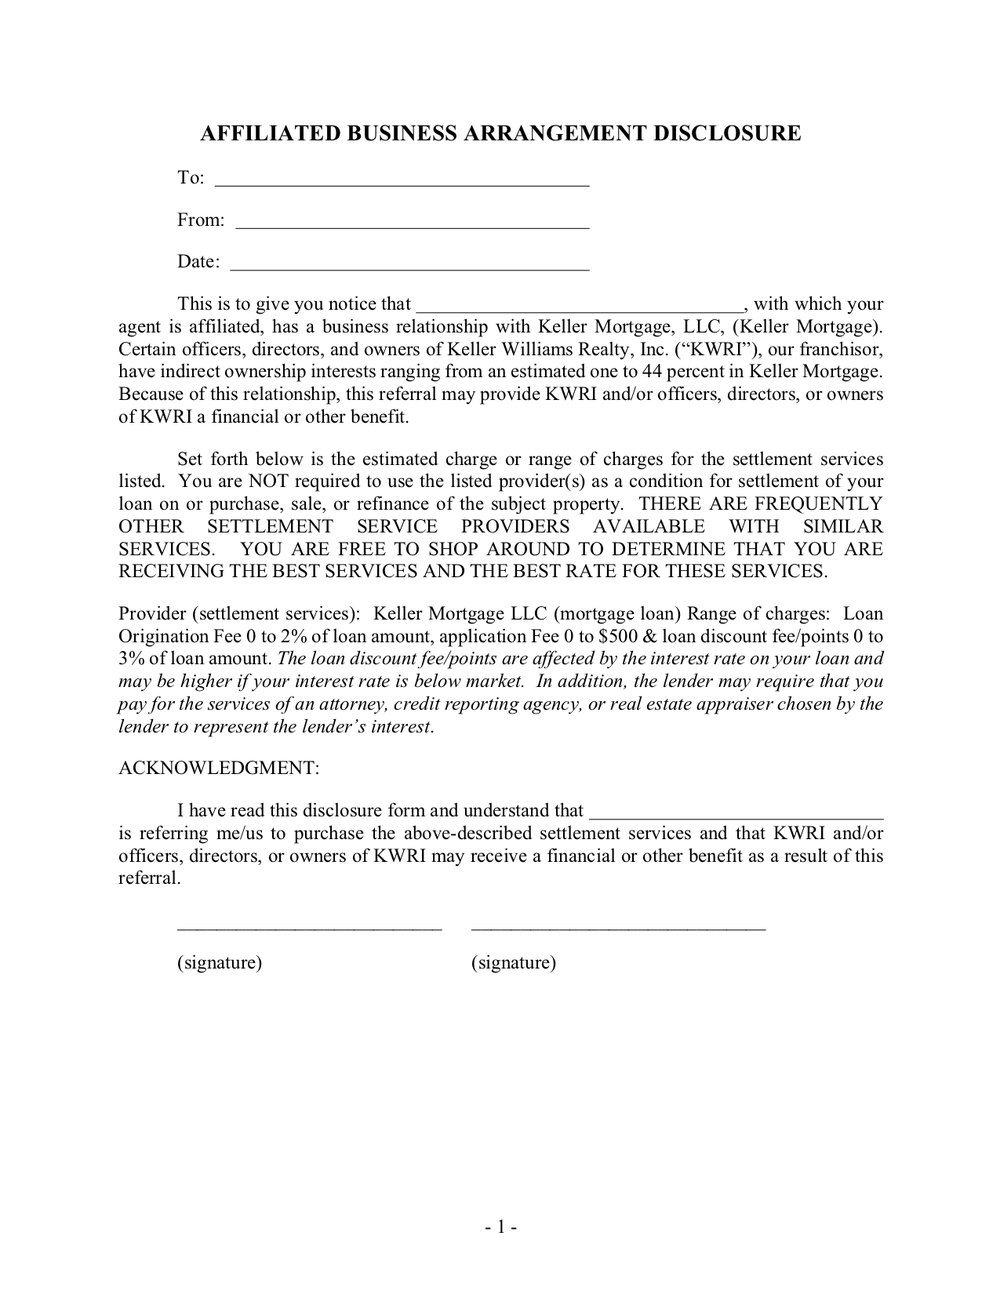 Keller Mortgage Affiliated Business Arrangement Disclosure.jpg